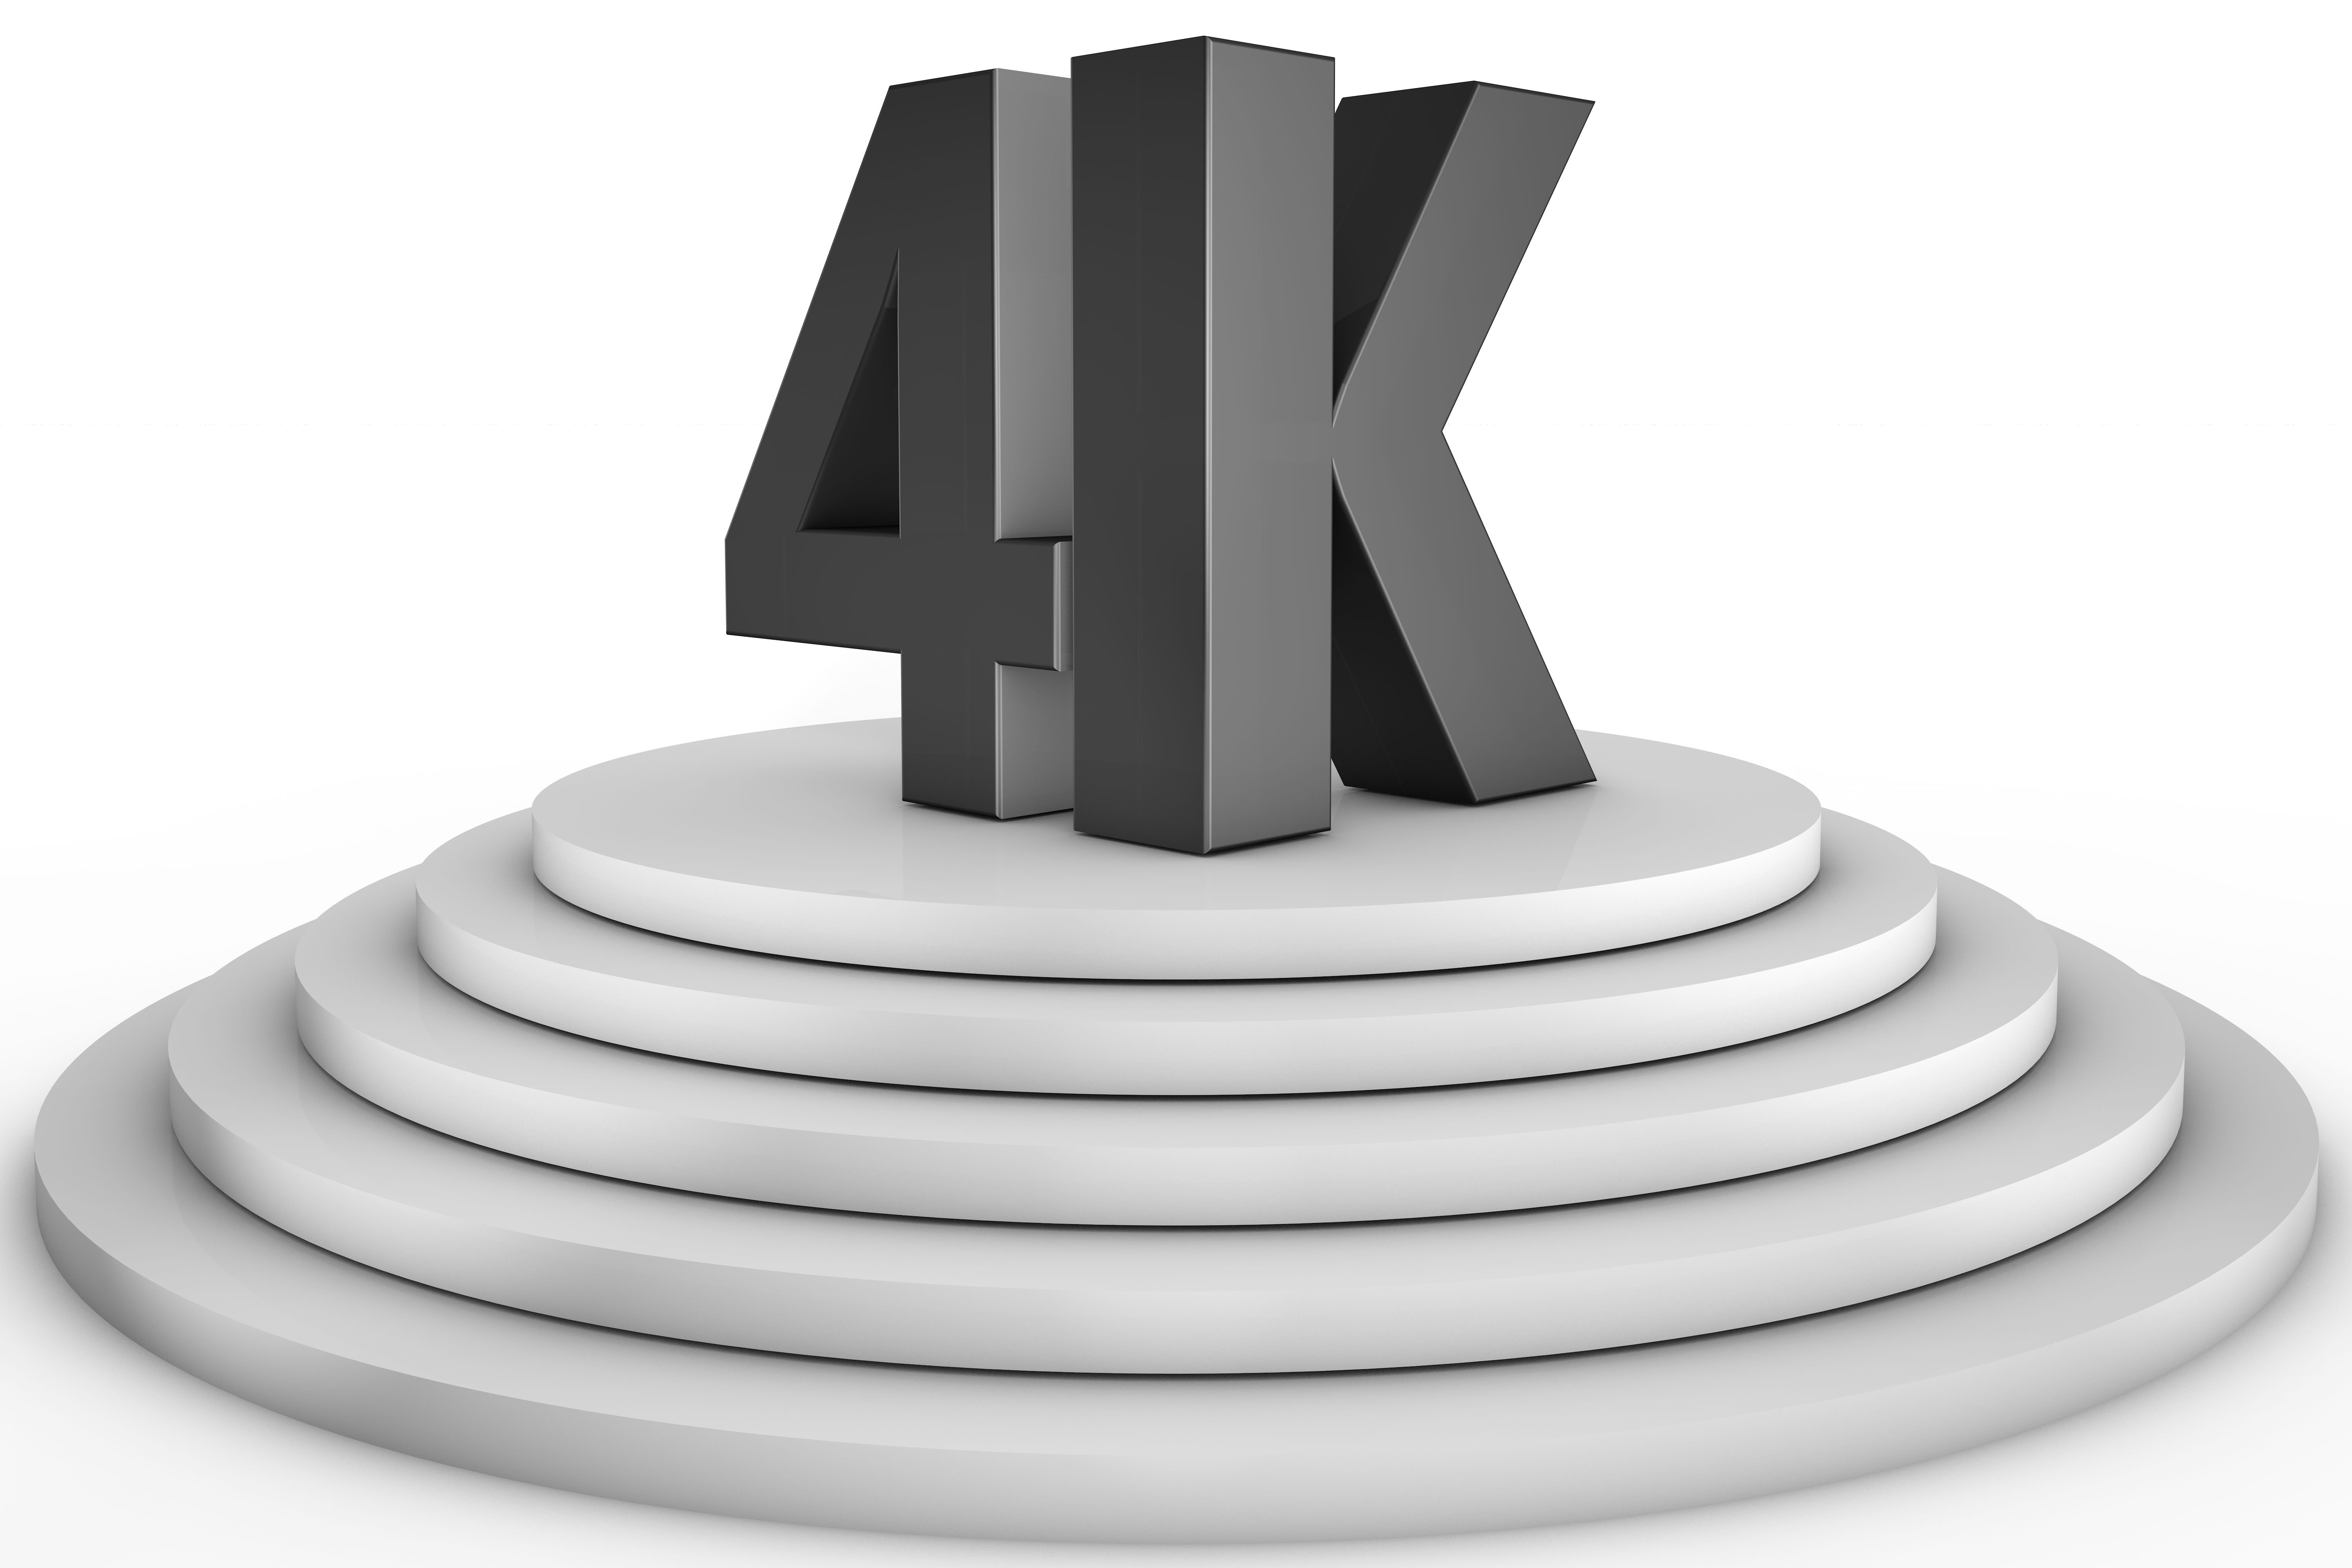 How Do You Watch 4K UHD Movies: Streaming or Disc?